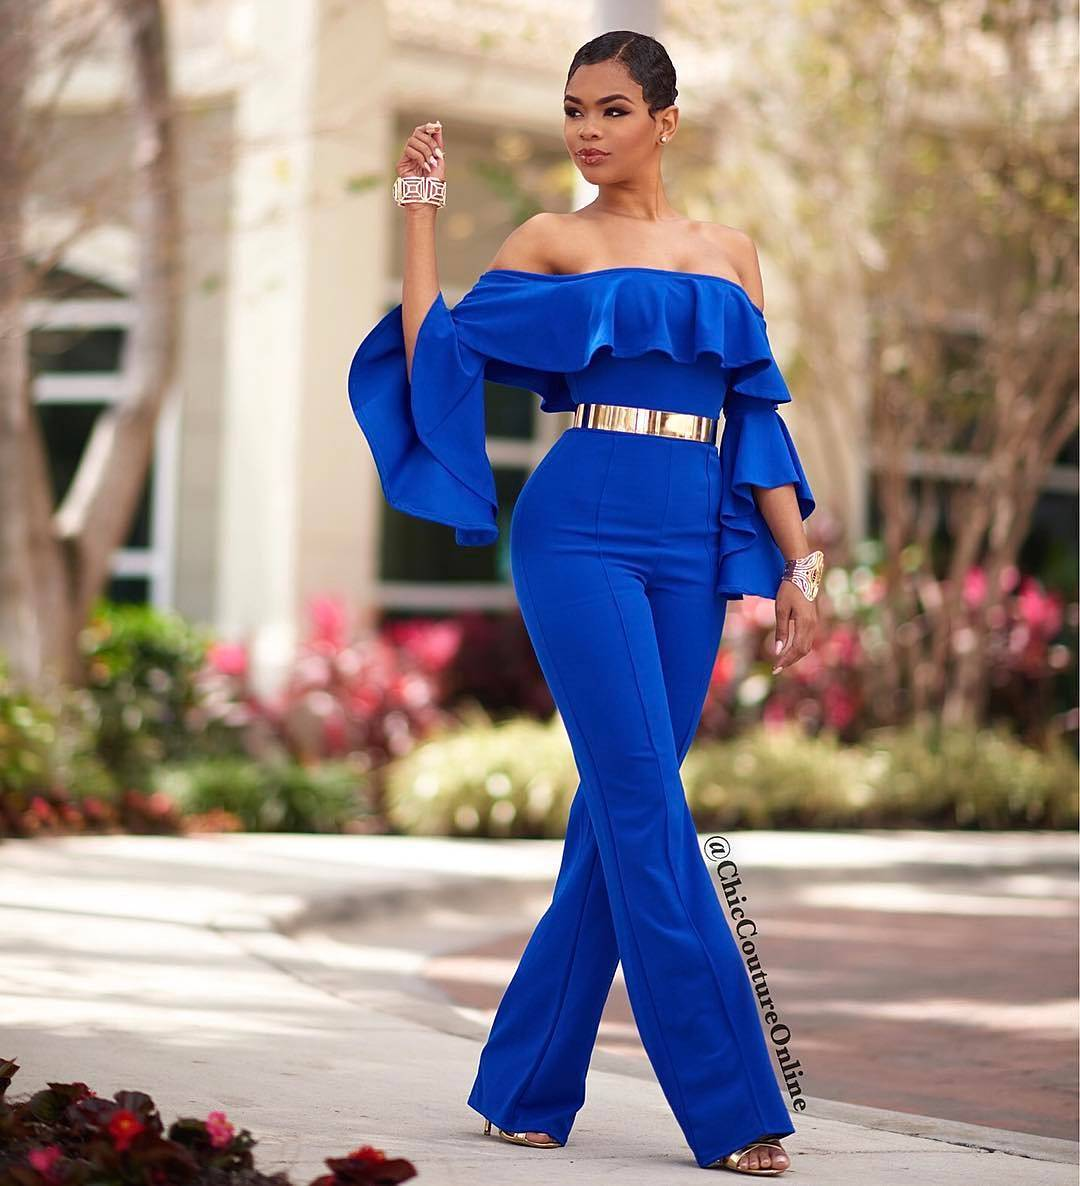 c9cb8547090 Wedding Guest Glam - Jumpsuits Are Perfect For Weddings.